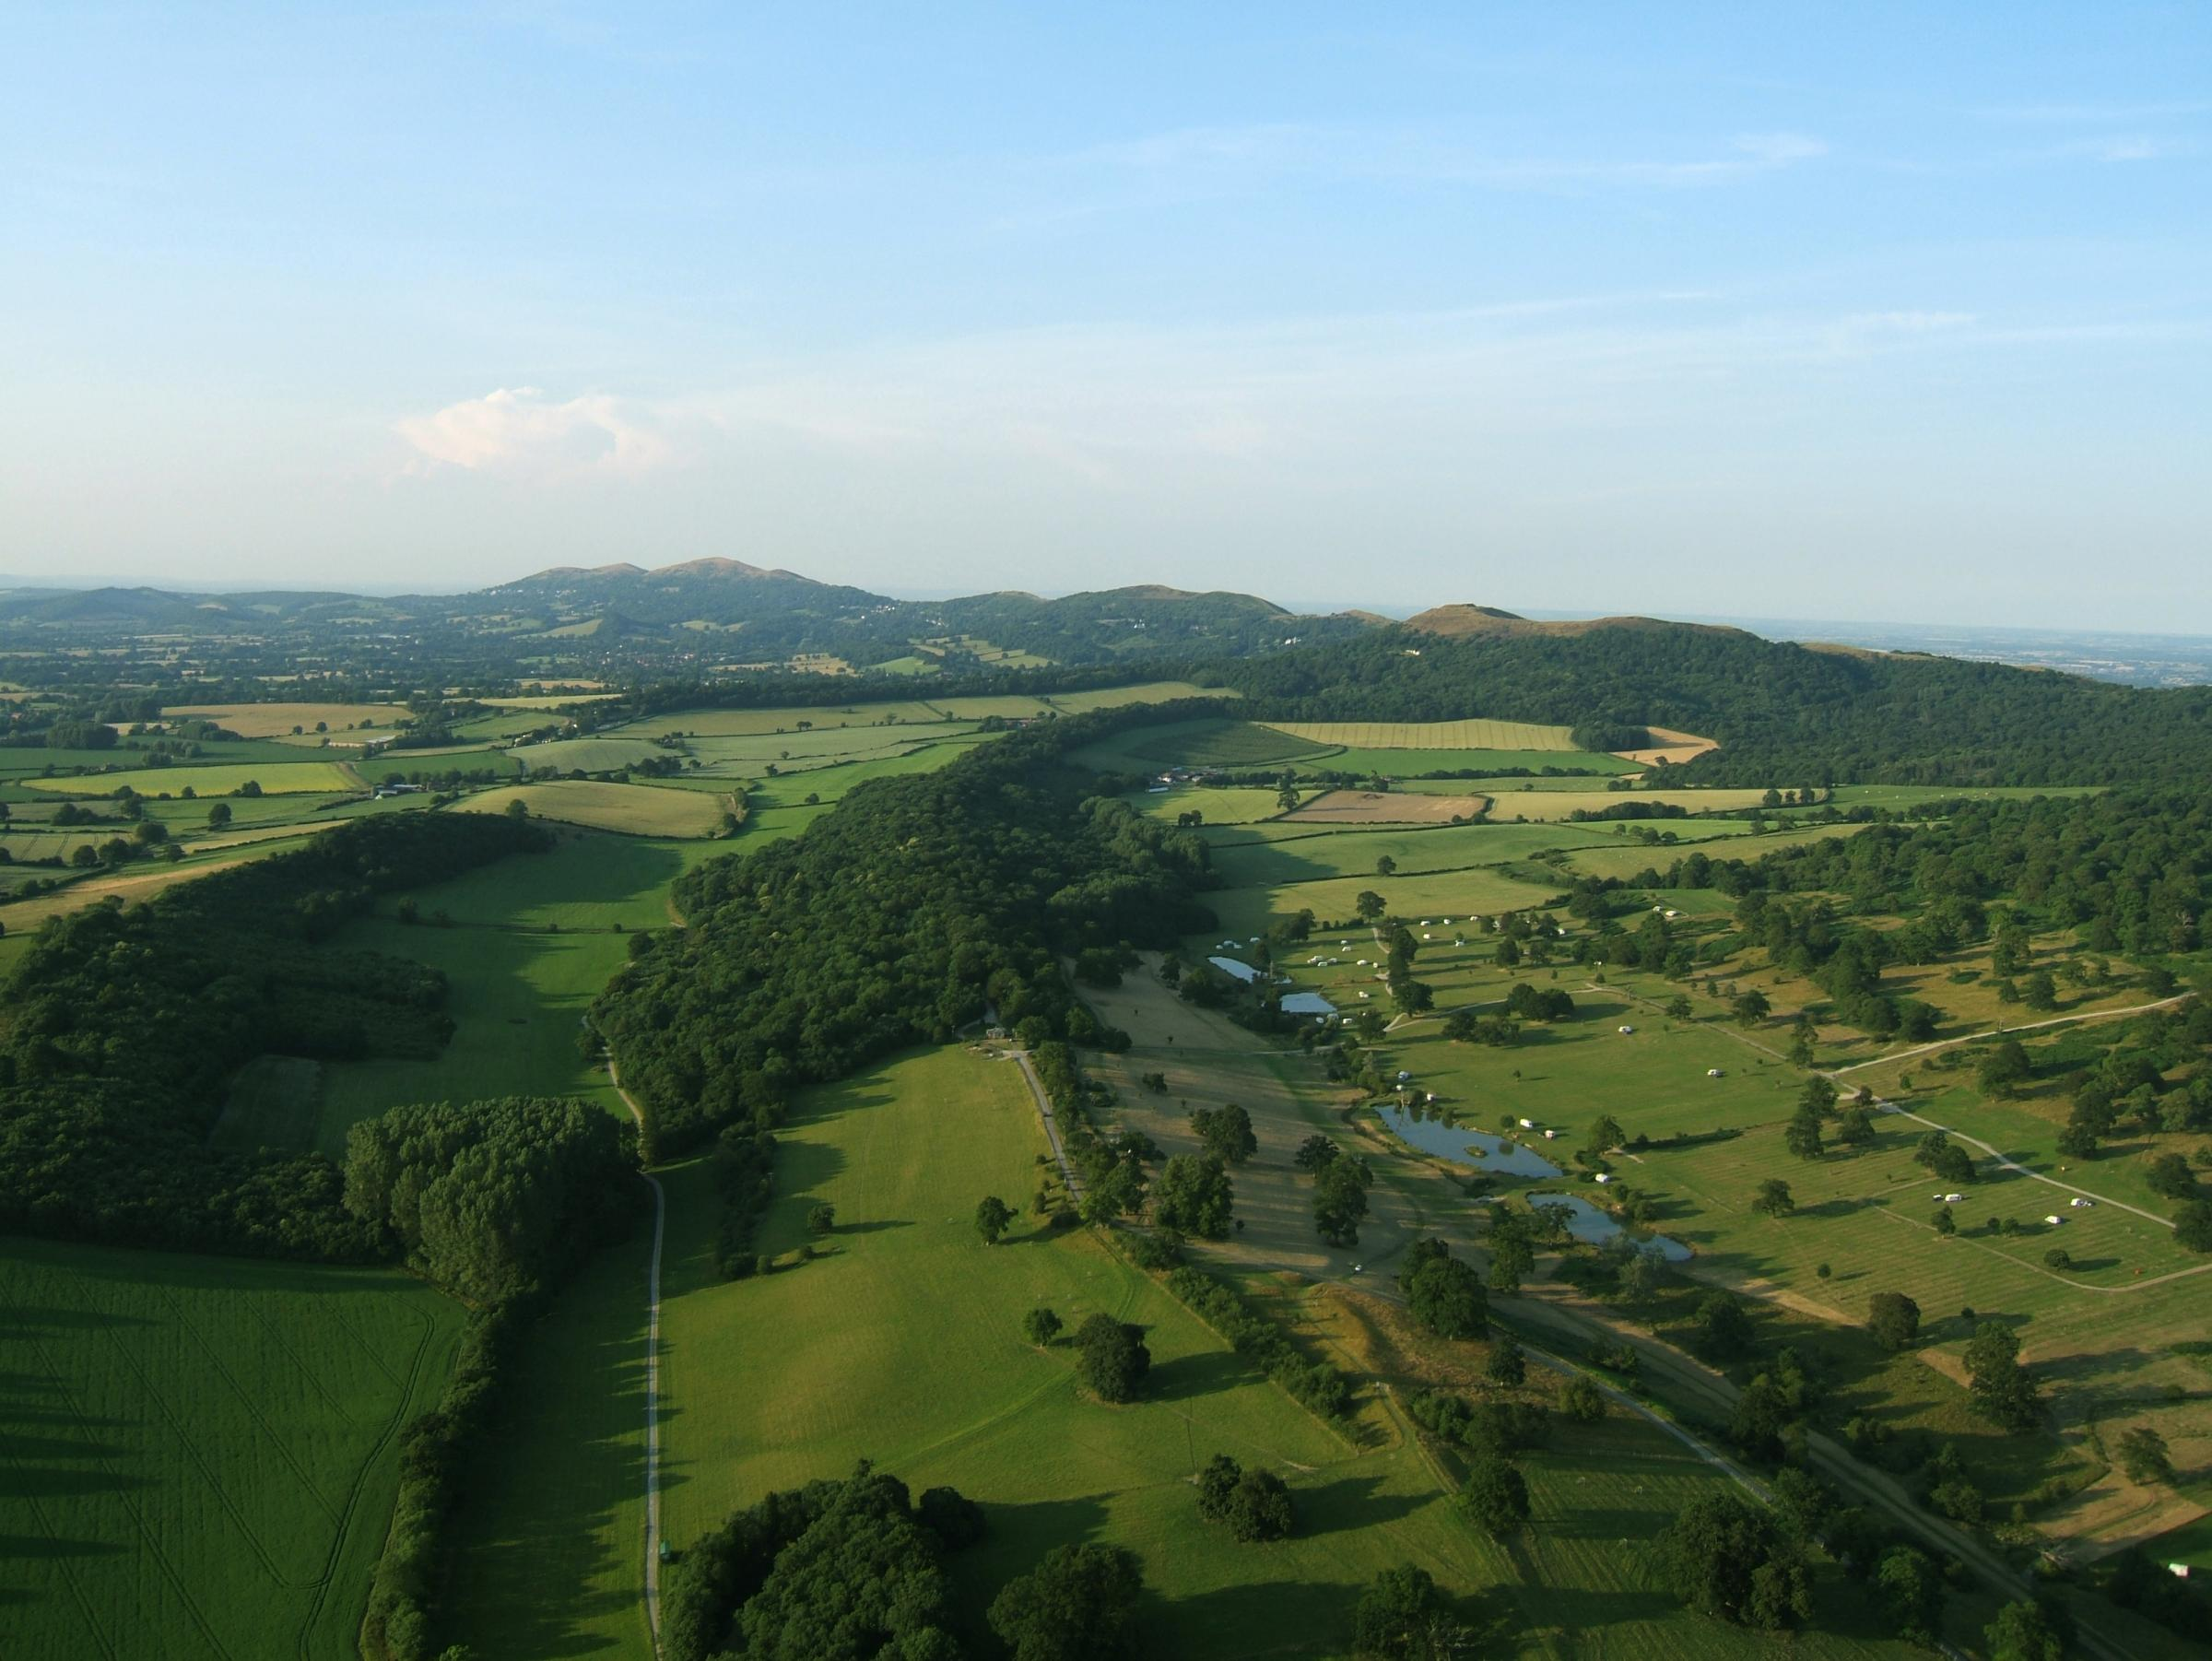 Flying over spectaculat Worcestershire countryside.